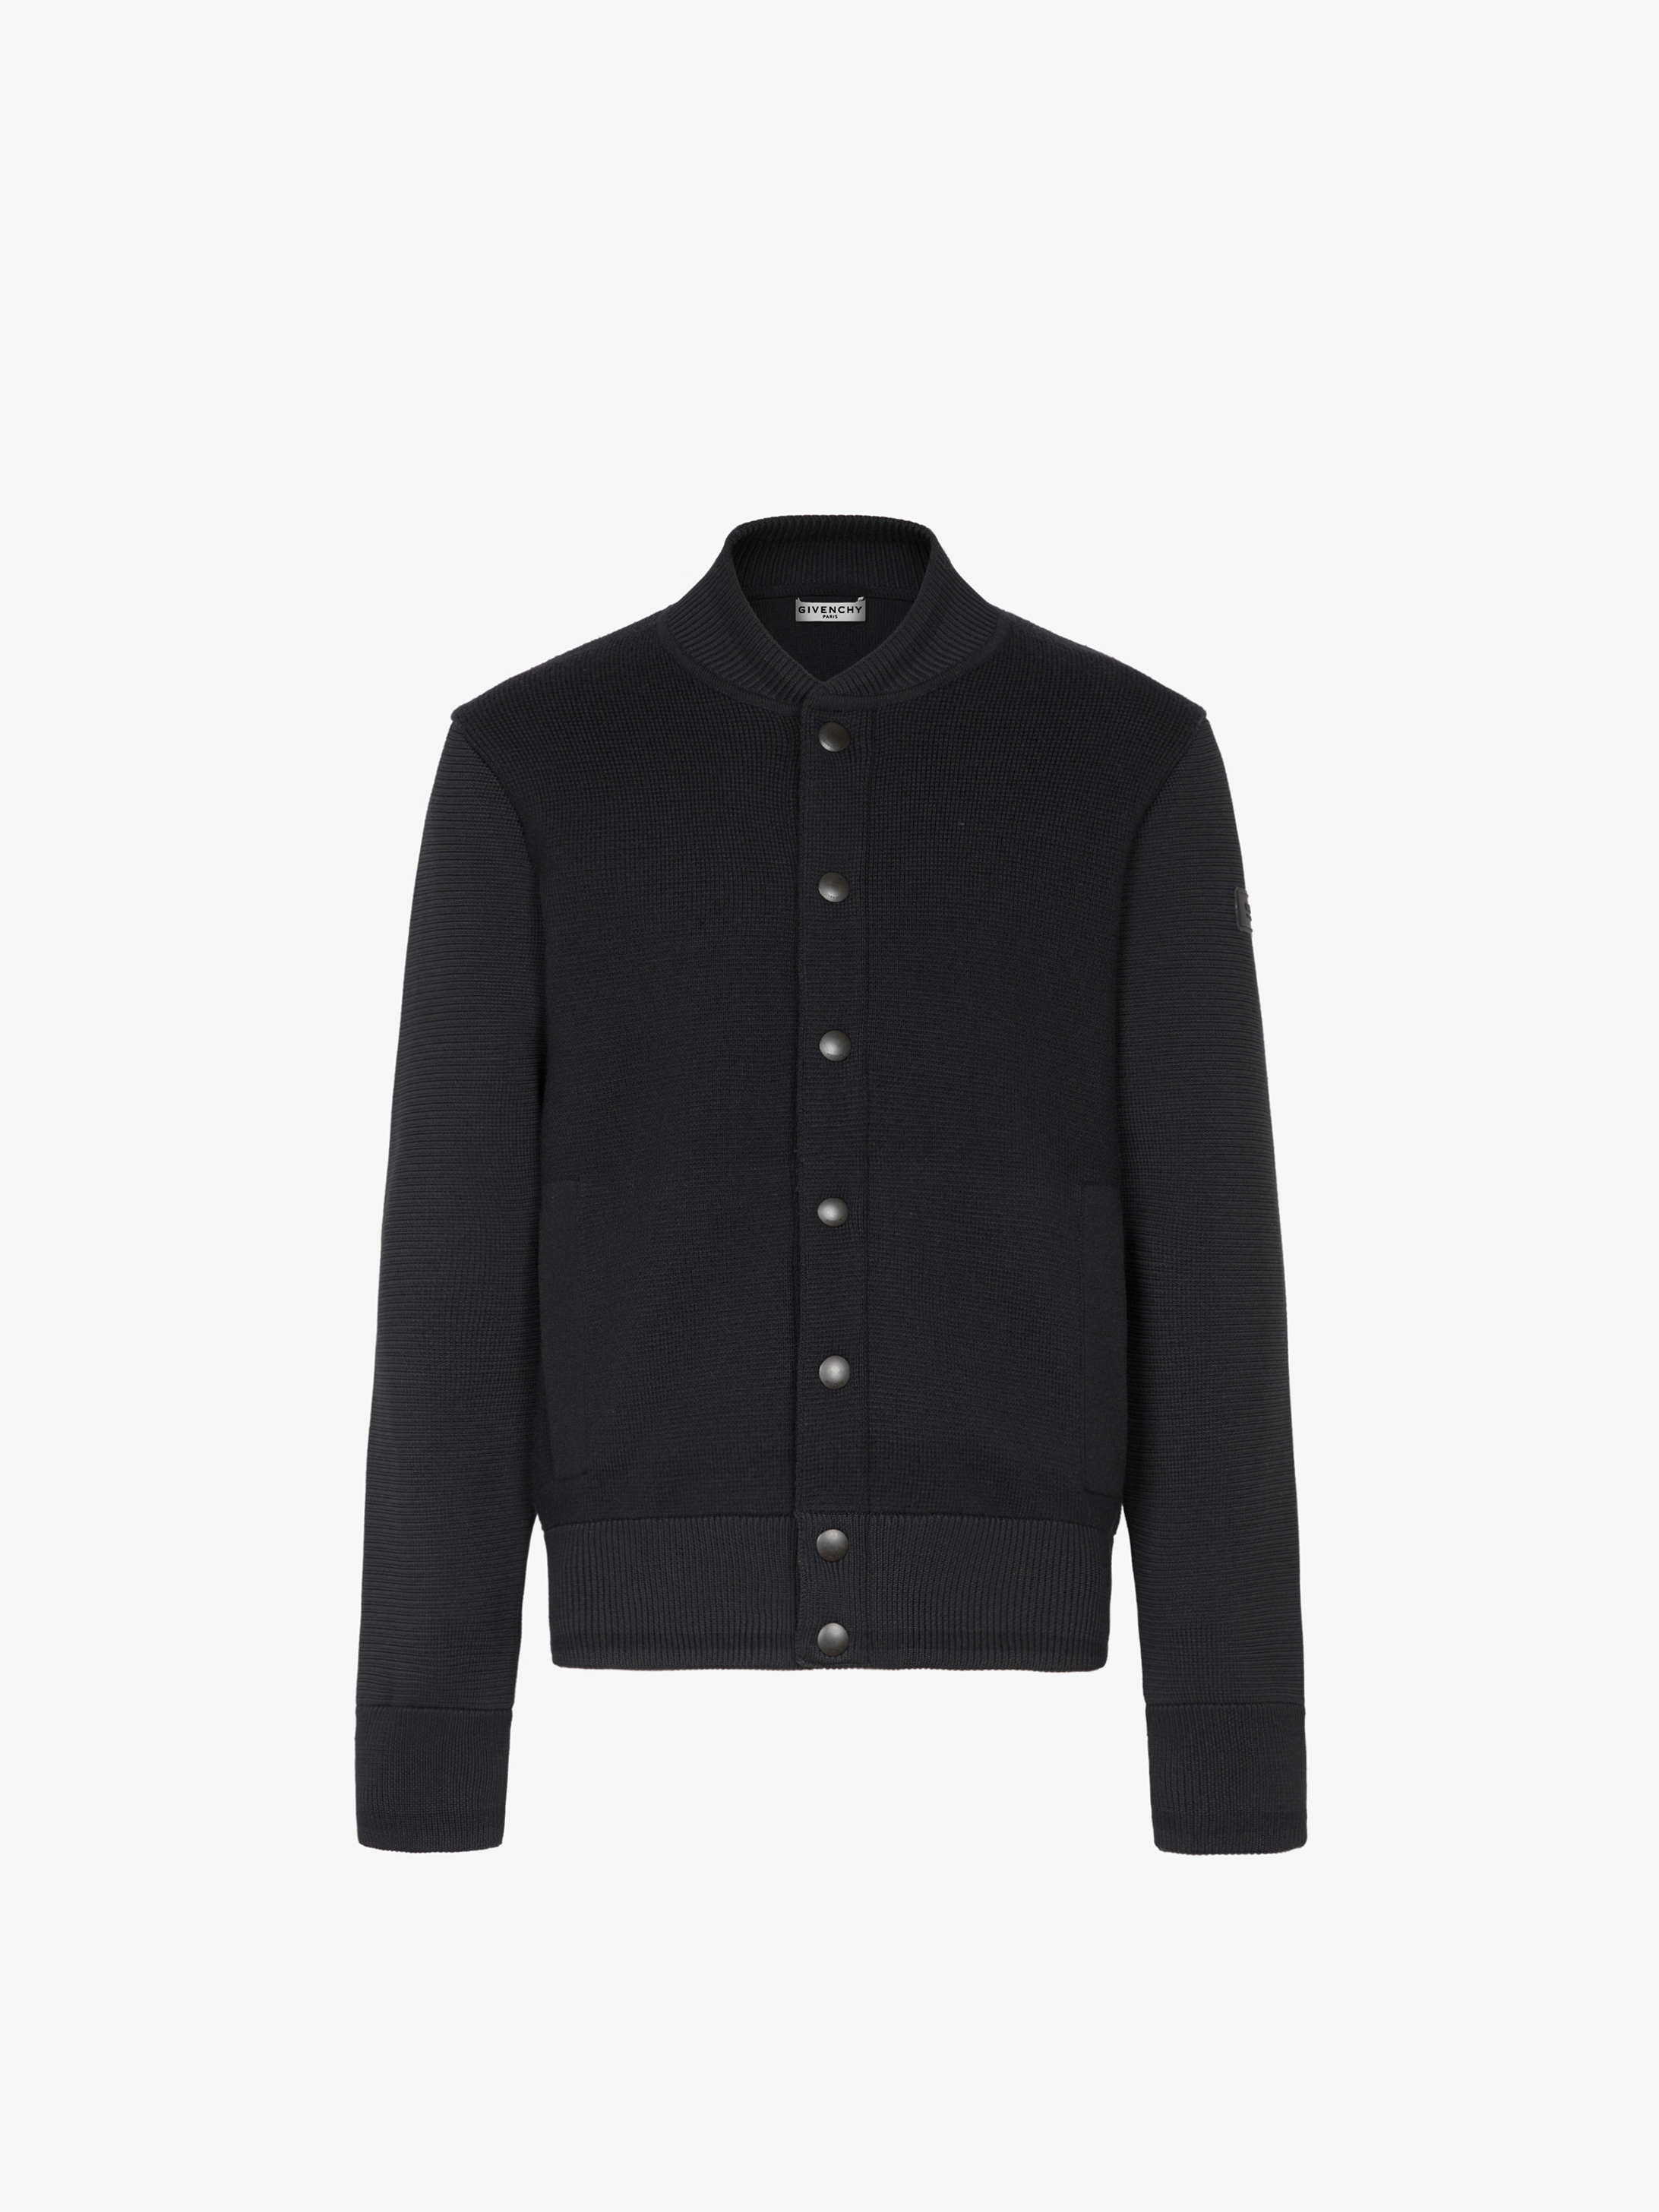 GIVENCHY bomber jacket in wool